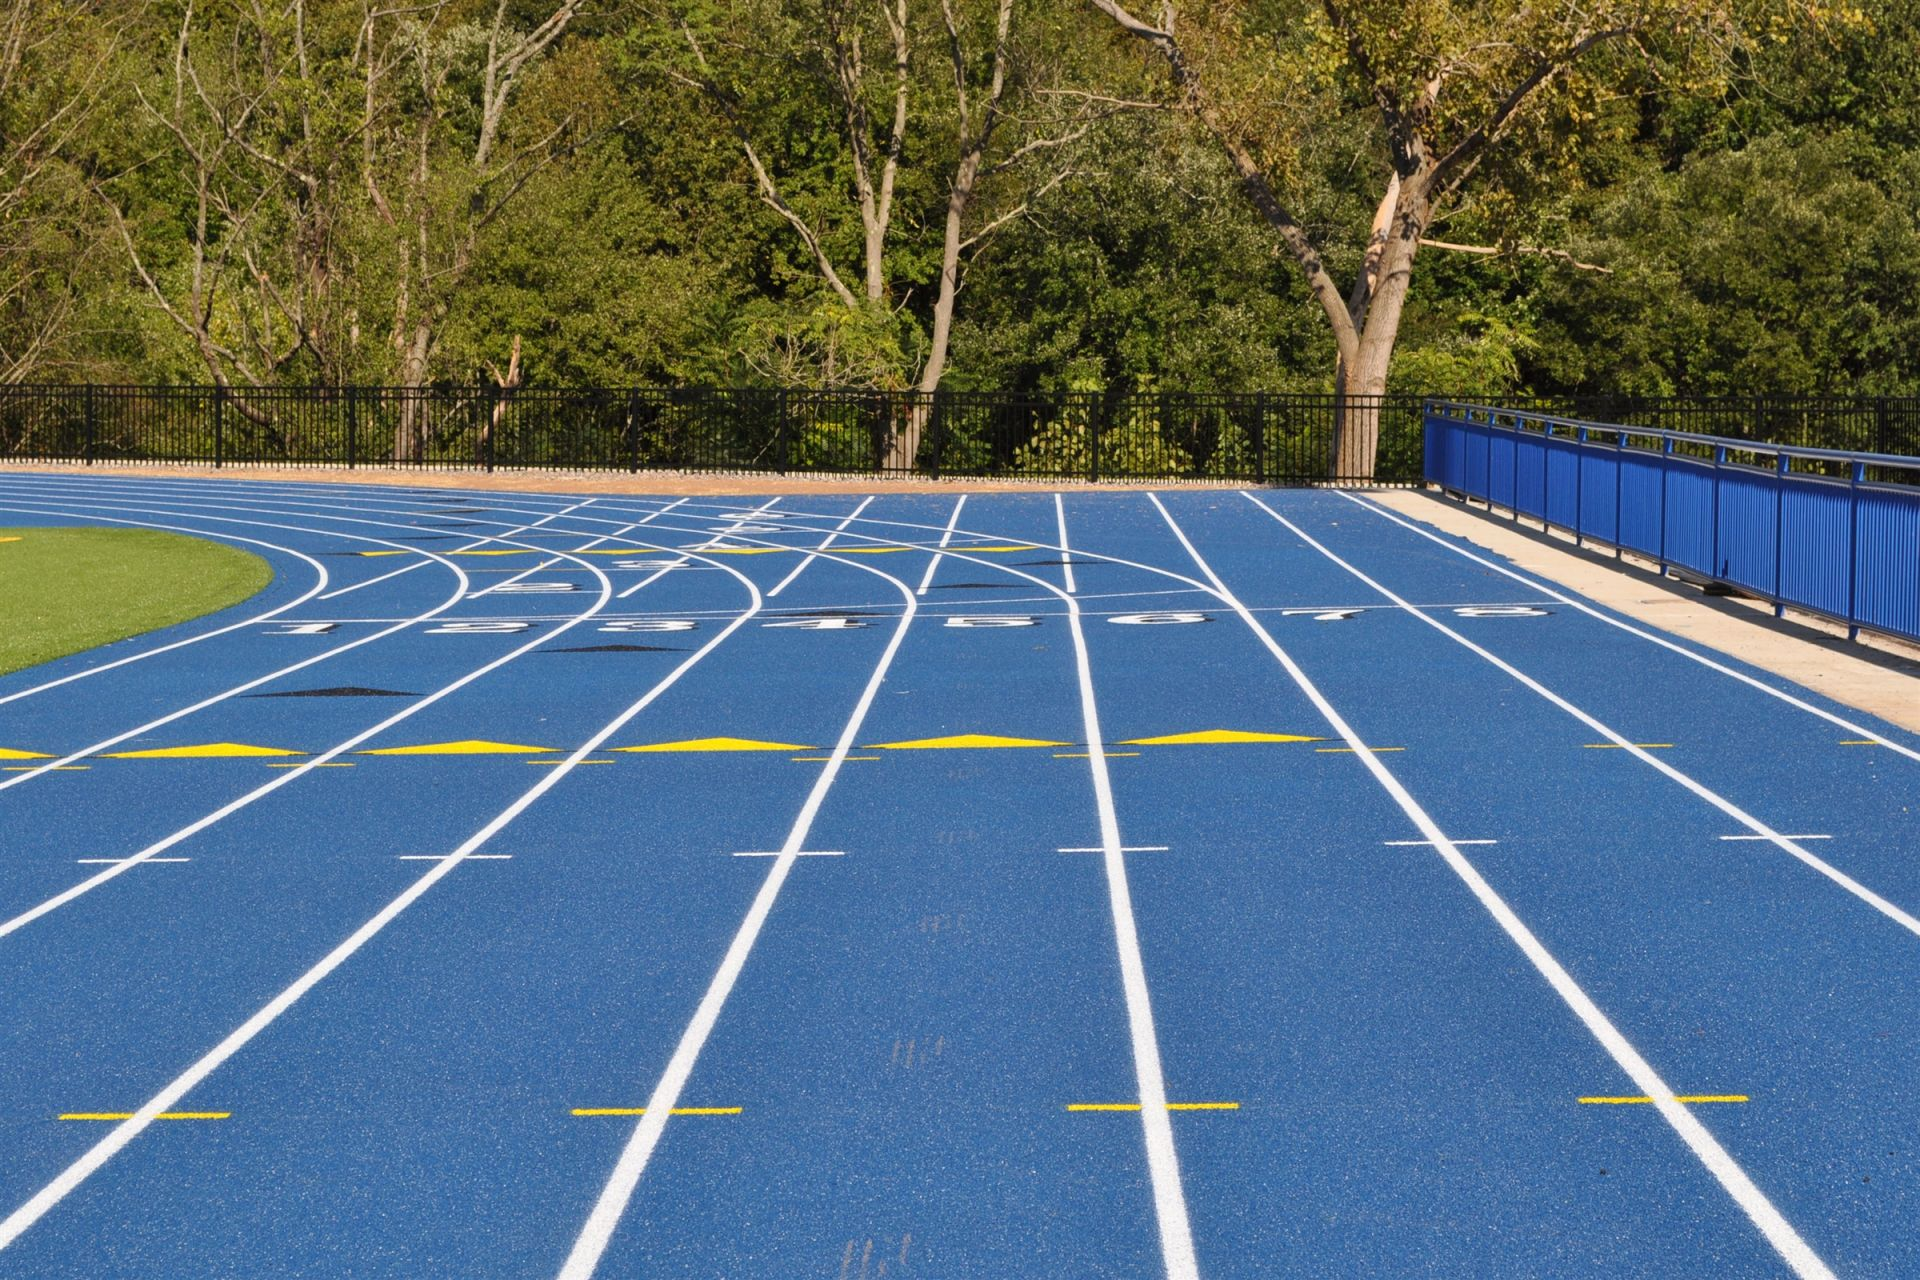 With the addition of lighting, the field now allows for night games, and an updated track has increased the number of lanes from six to eight total. Spectators can enjoy all of Cheshire Academy's athletic events from the comfort of several bleachers positioned alongside the field and track.